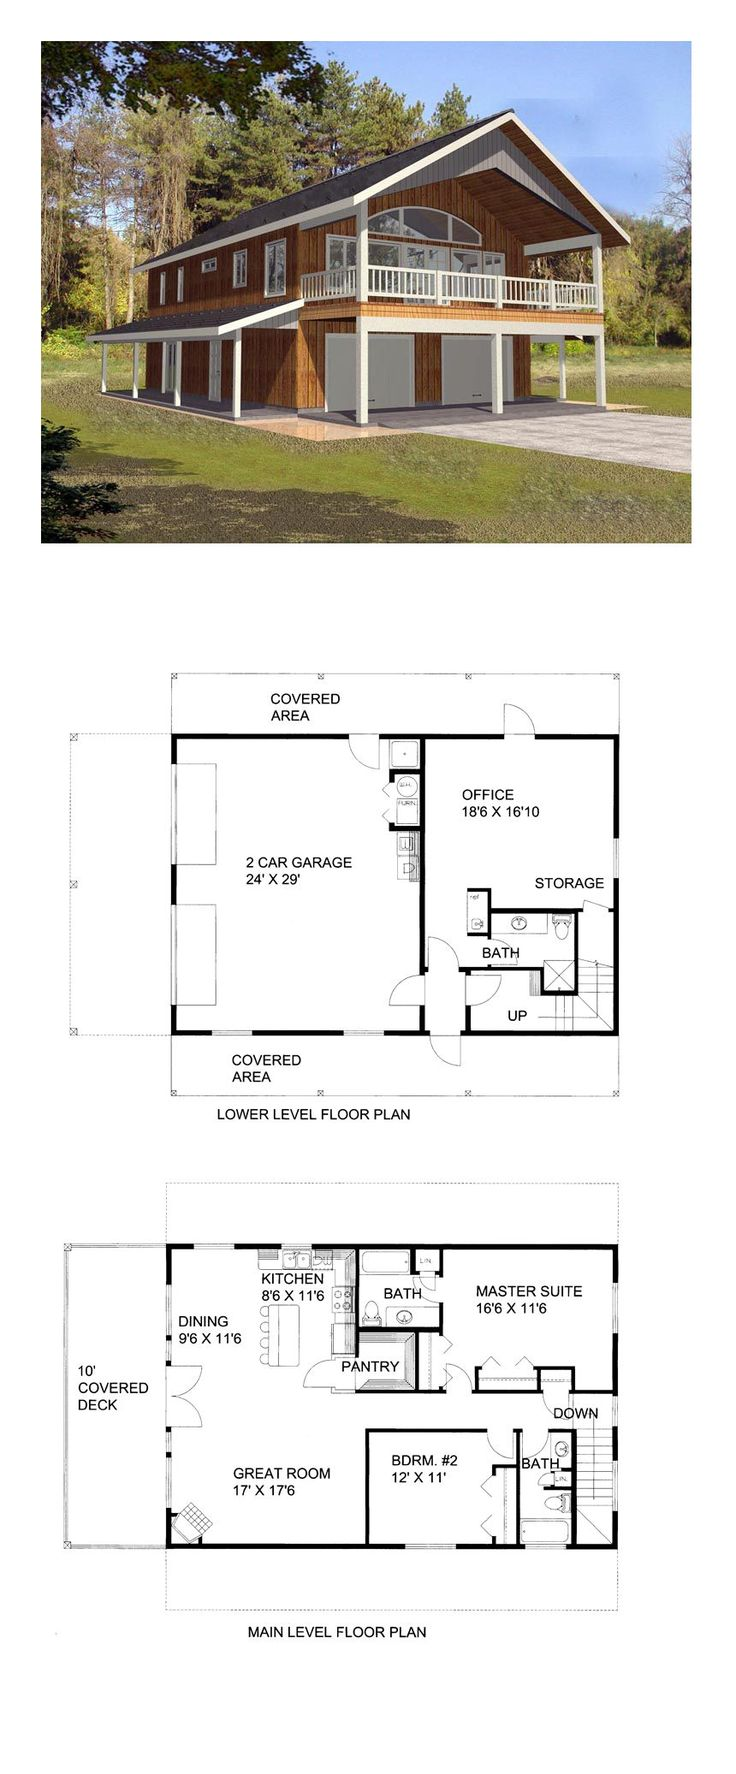 25 best ideas about garage apartment plans on pinterest for Plans for 3 car garage with apartment above